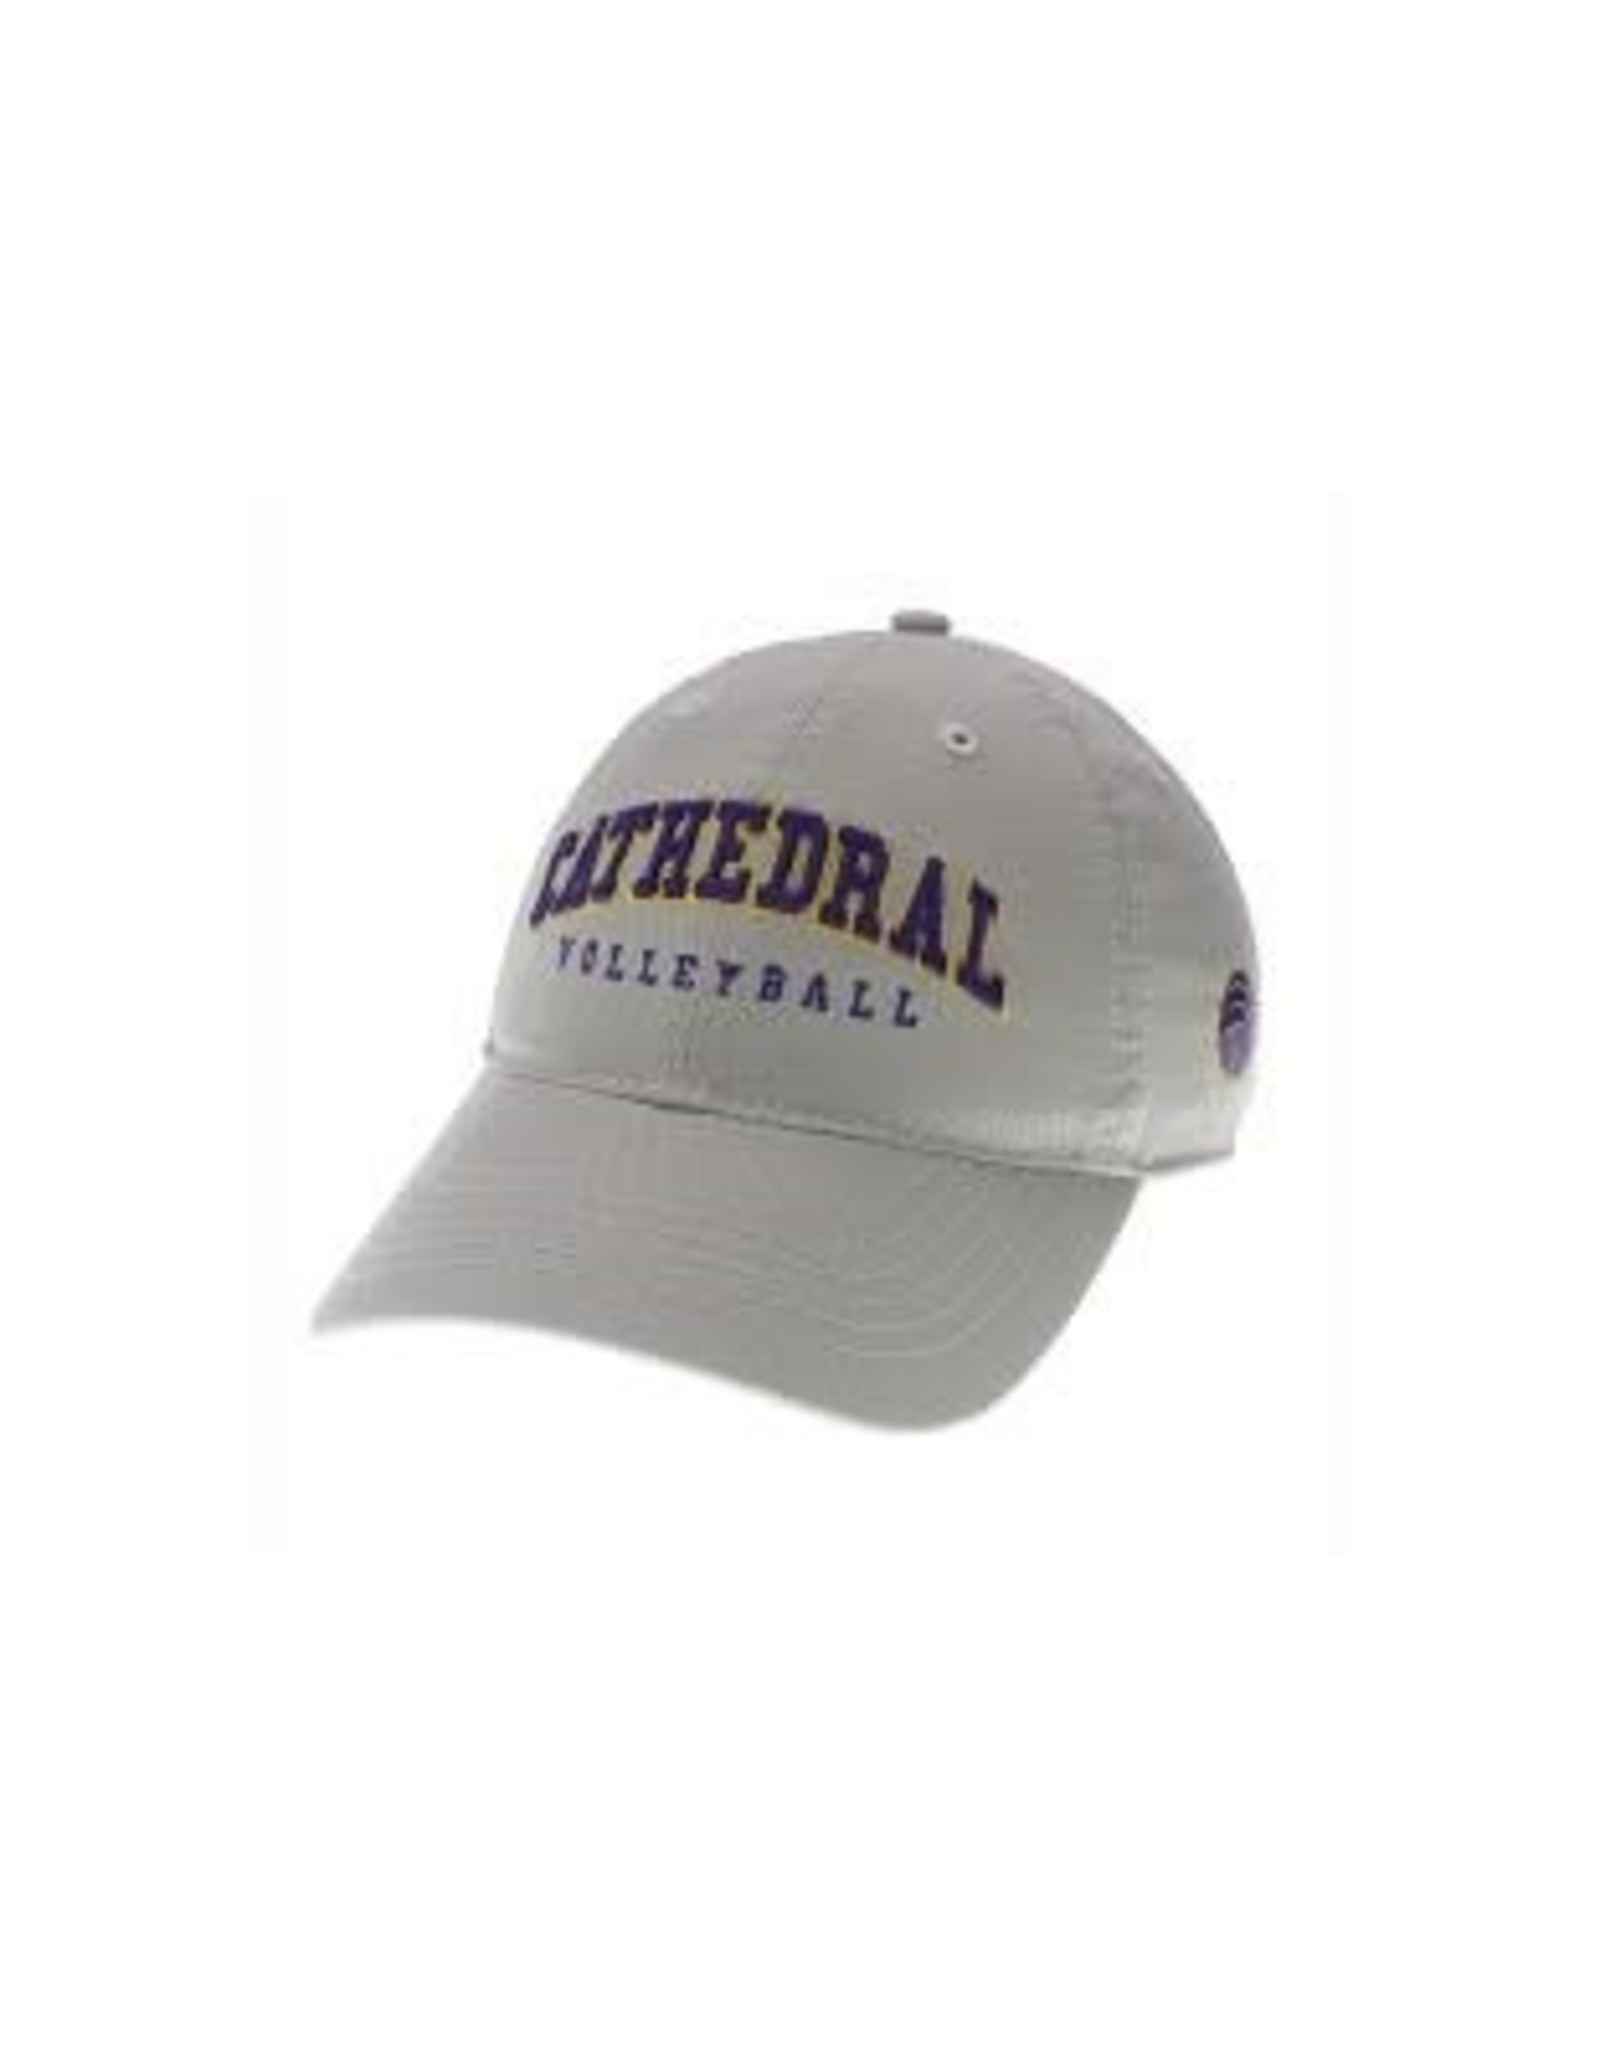 HAT-LEGACY-TAN VOLLEYBALL